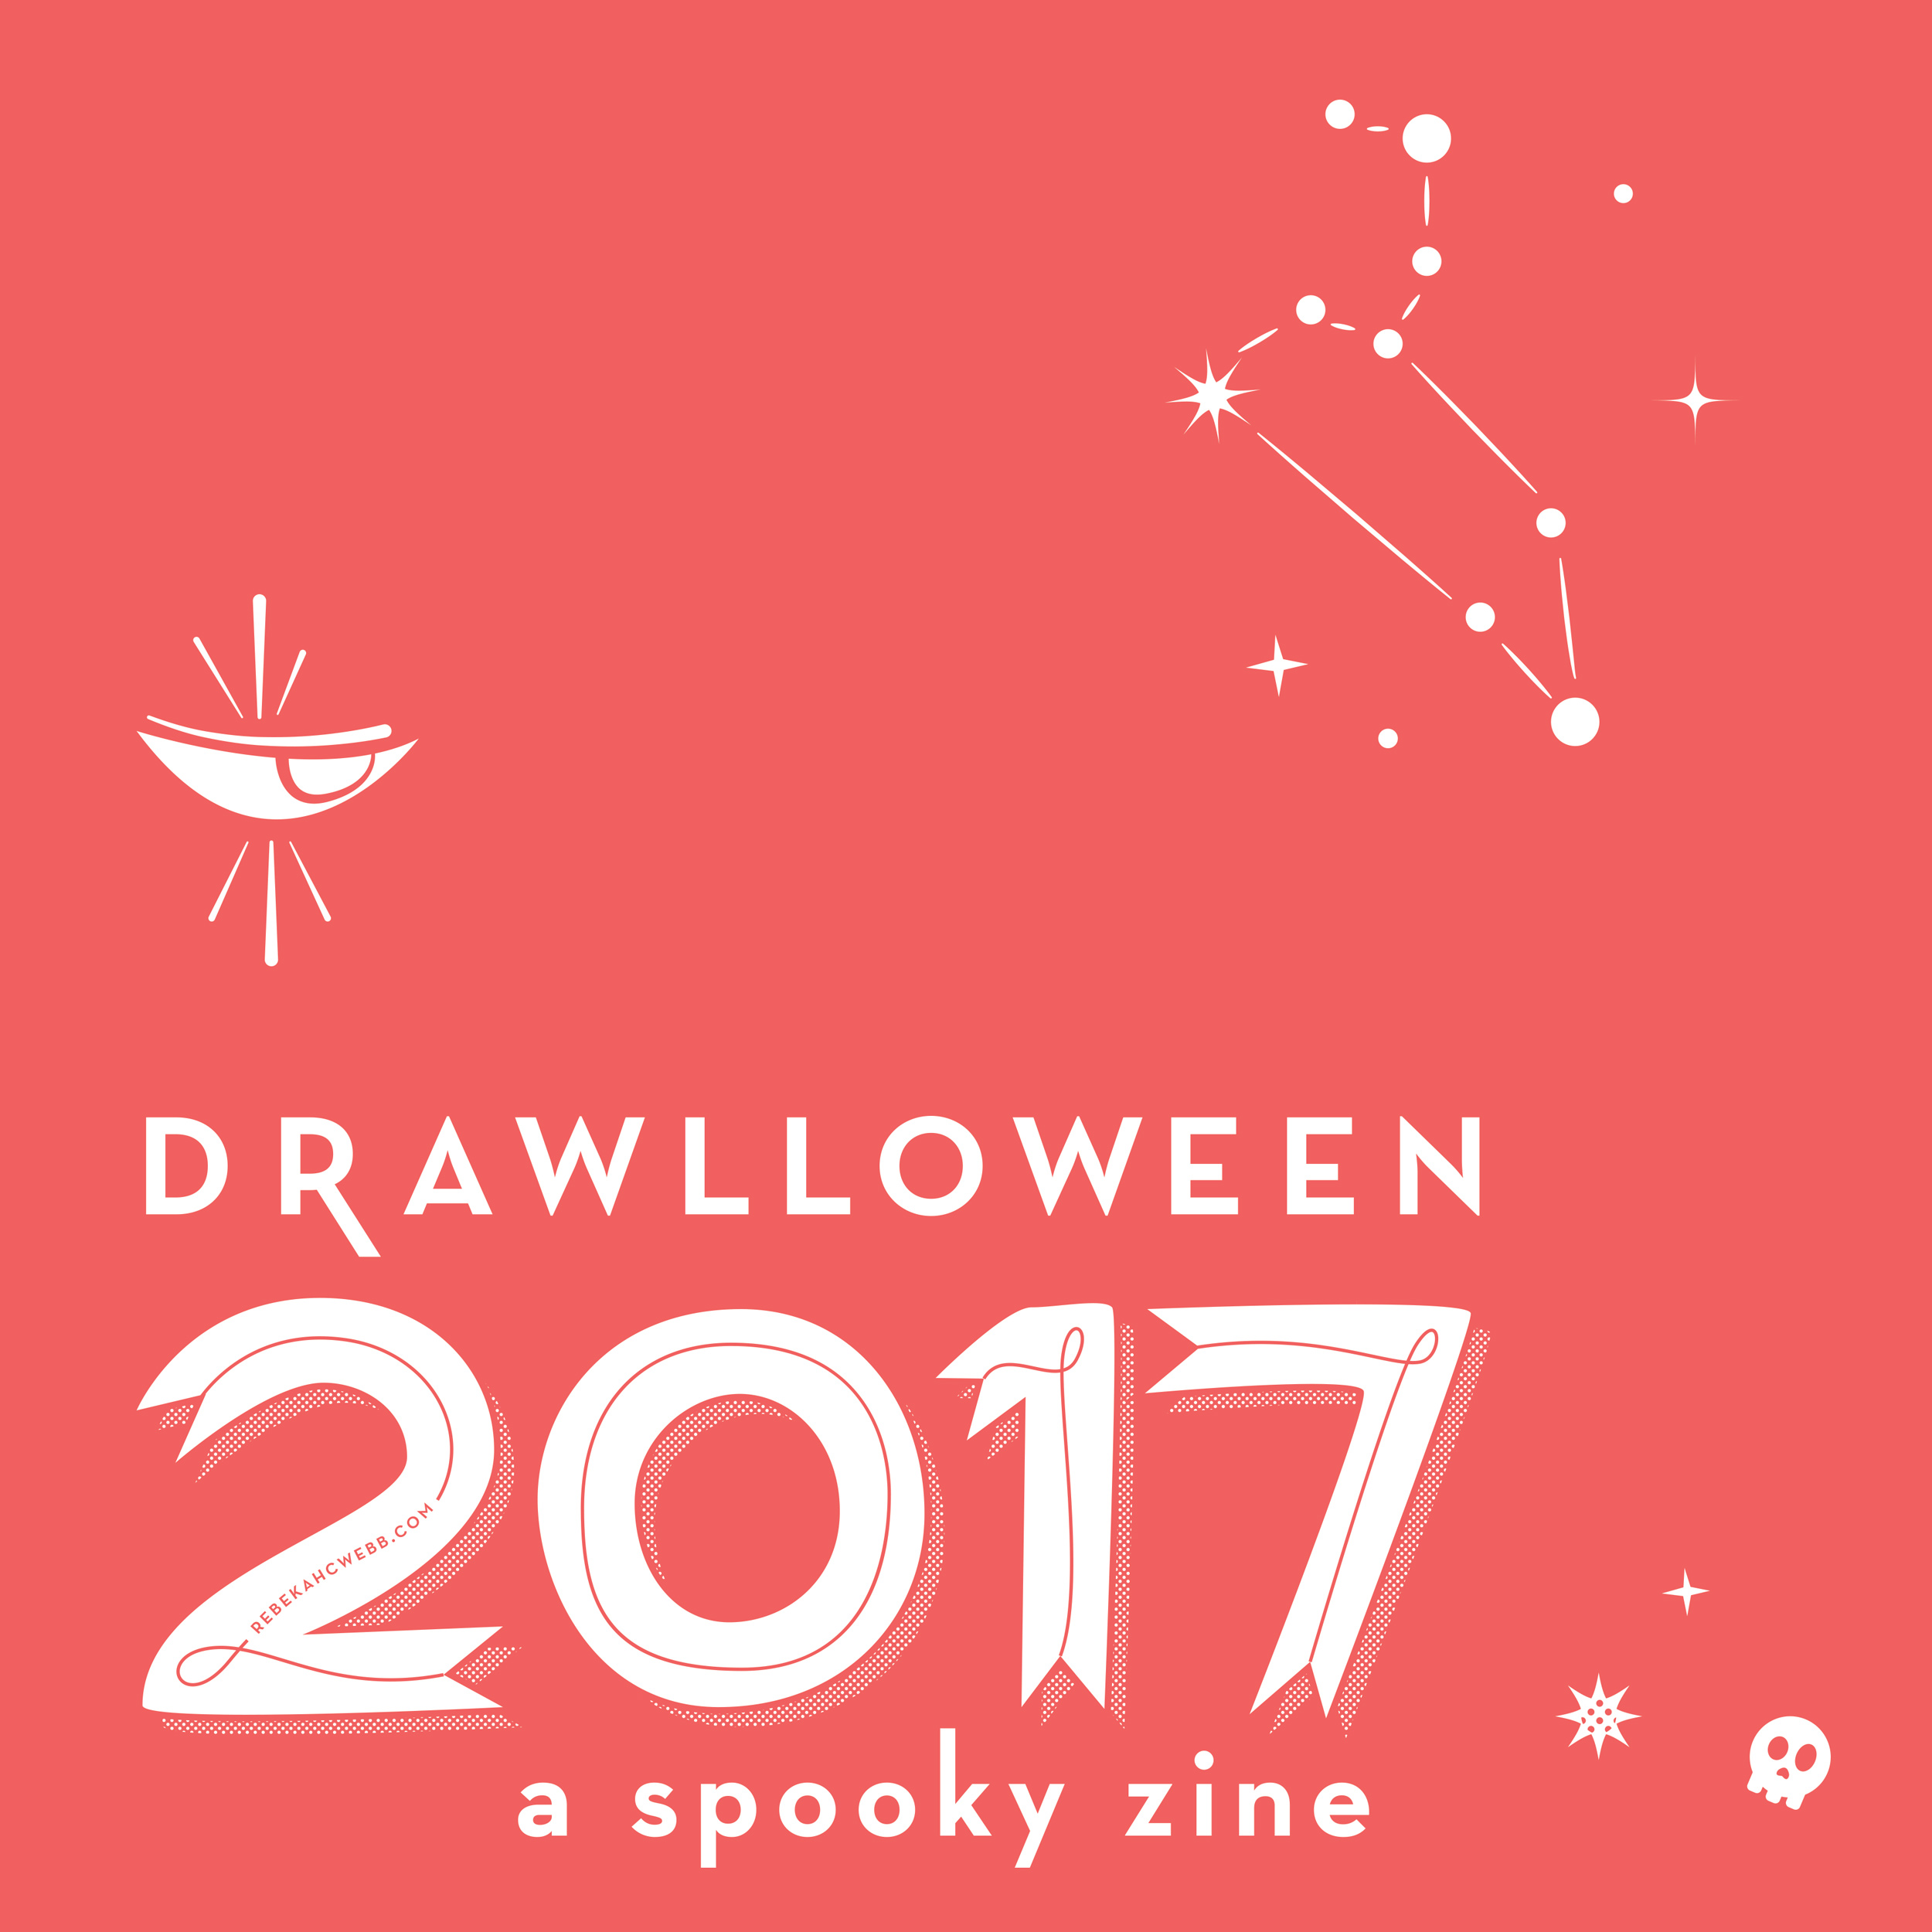 Halloween 2017zine  - Illustration, layout & printingas well as collateral.